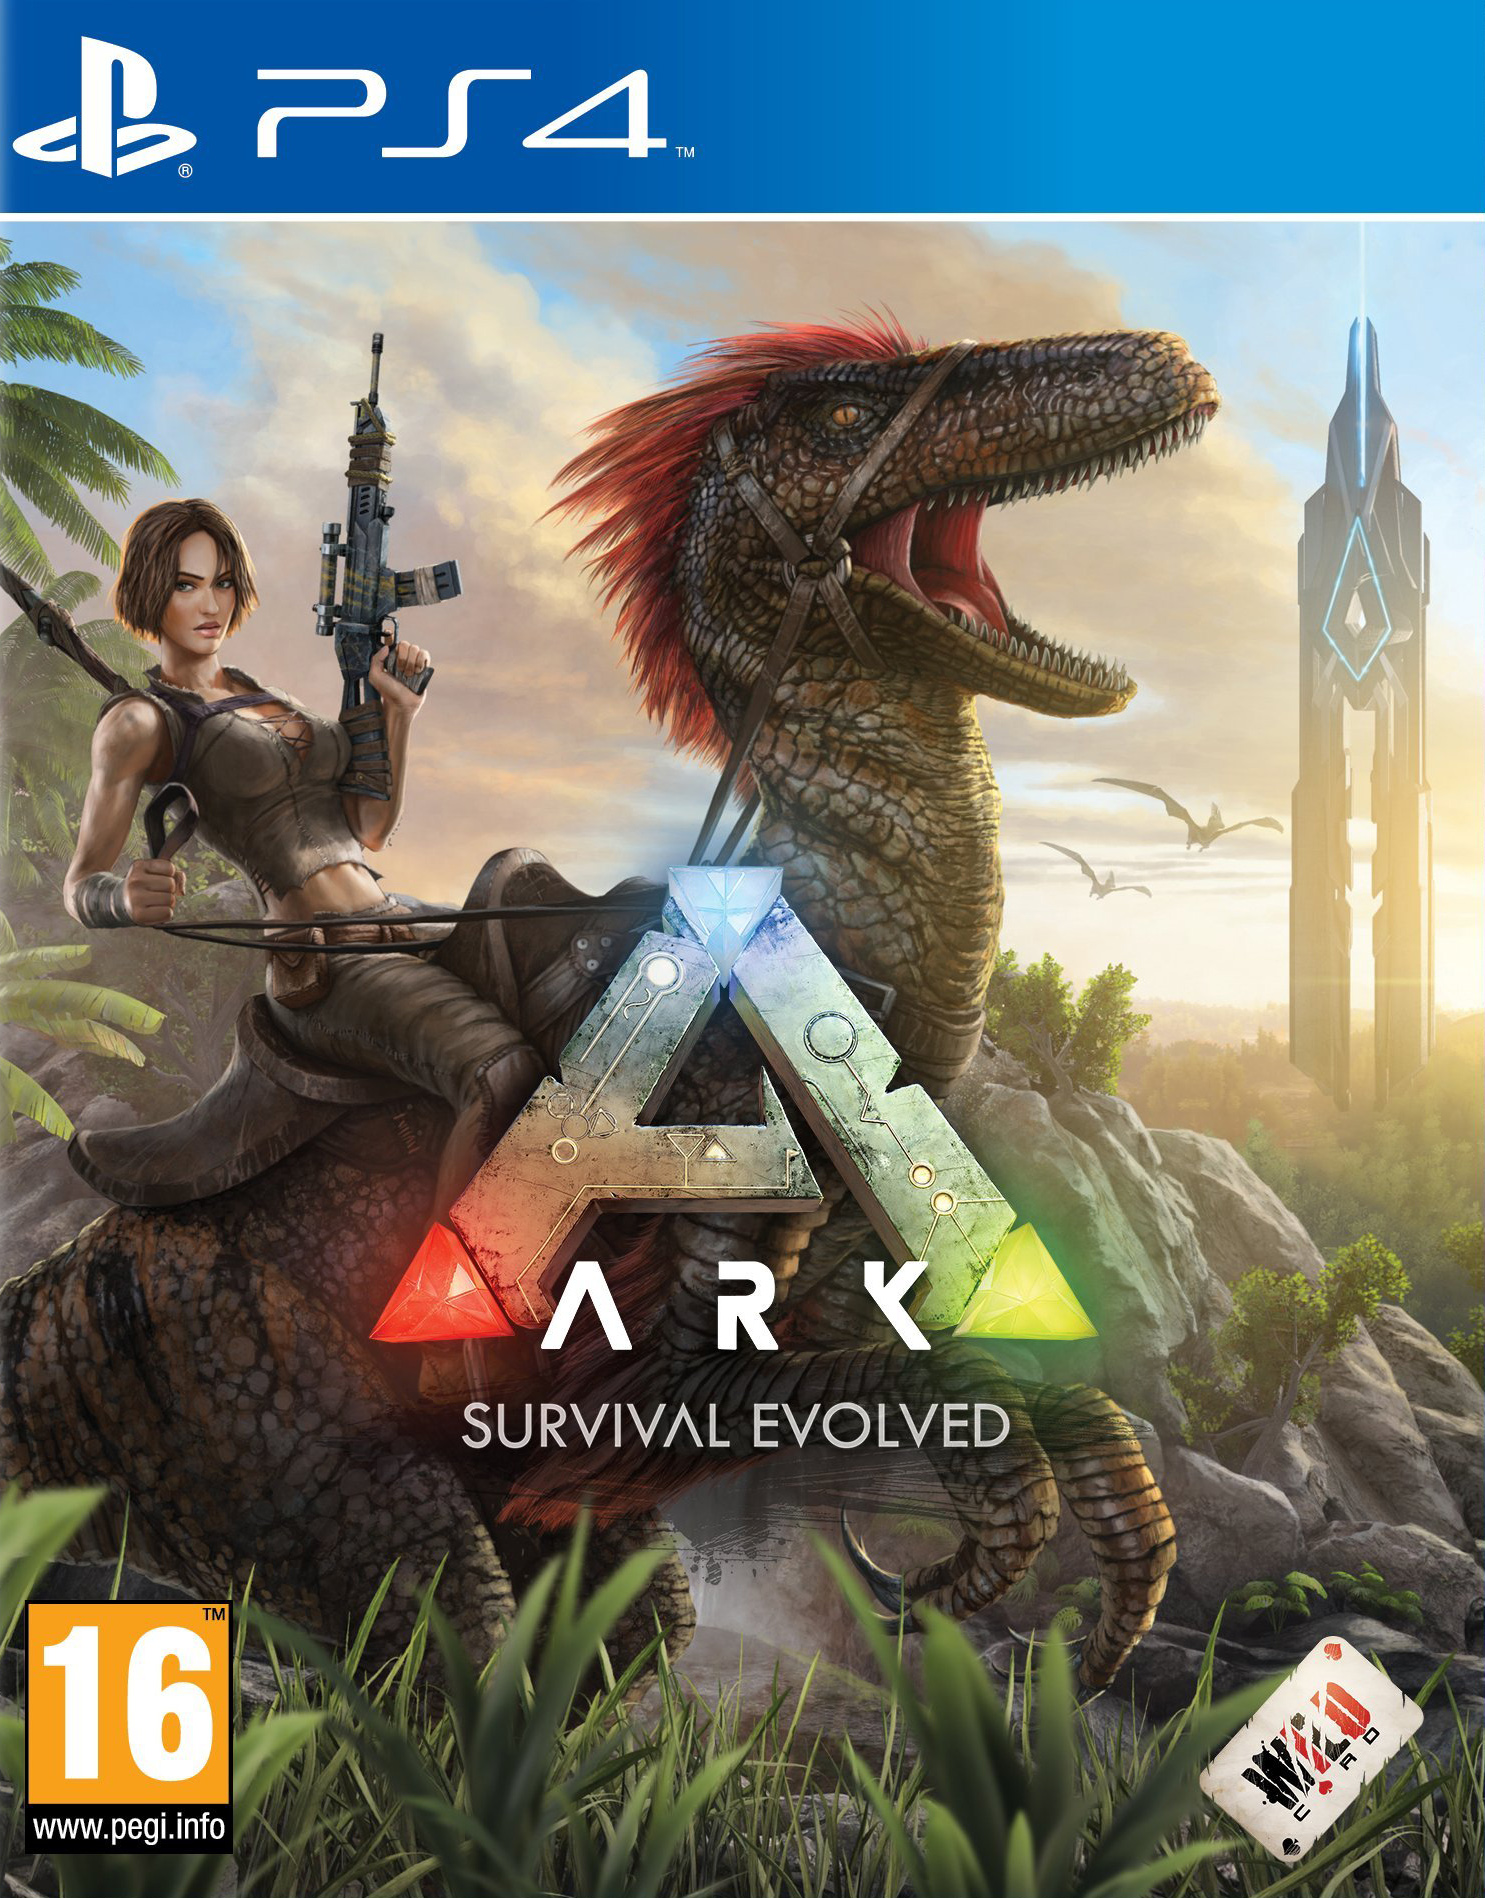 ARK: Survival Evolved [PS4] 5.05 / 6.72 / 7.02 [EUR] (2016) [Русский] (v1.17)